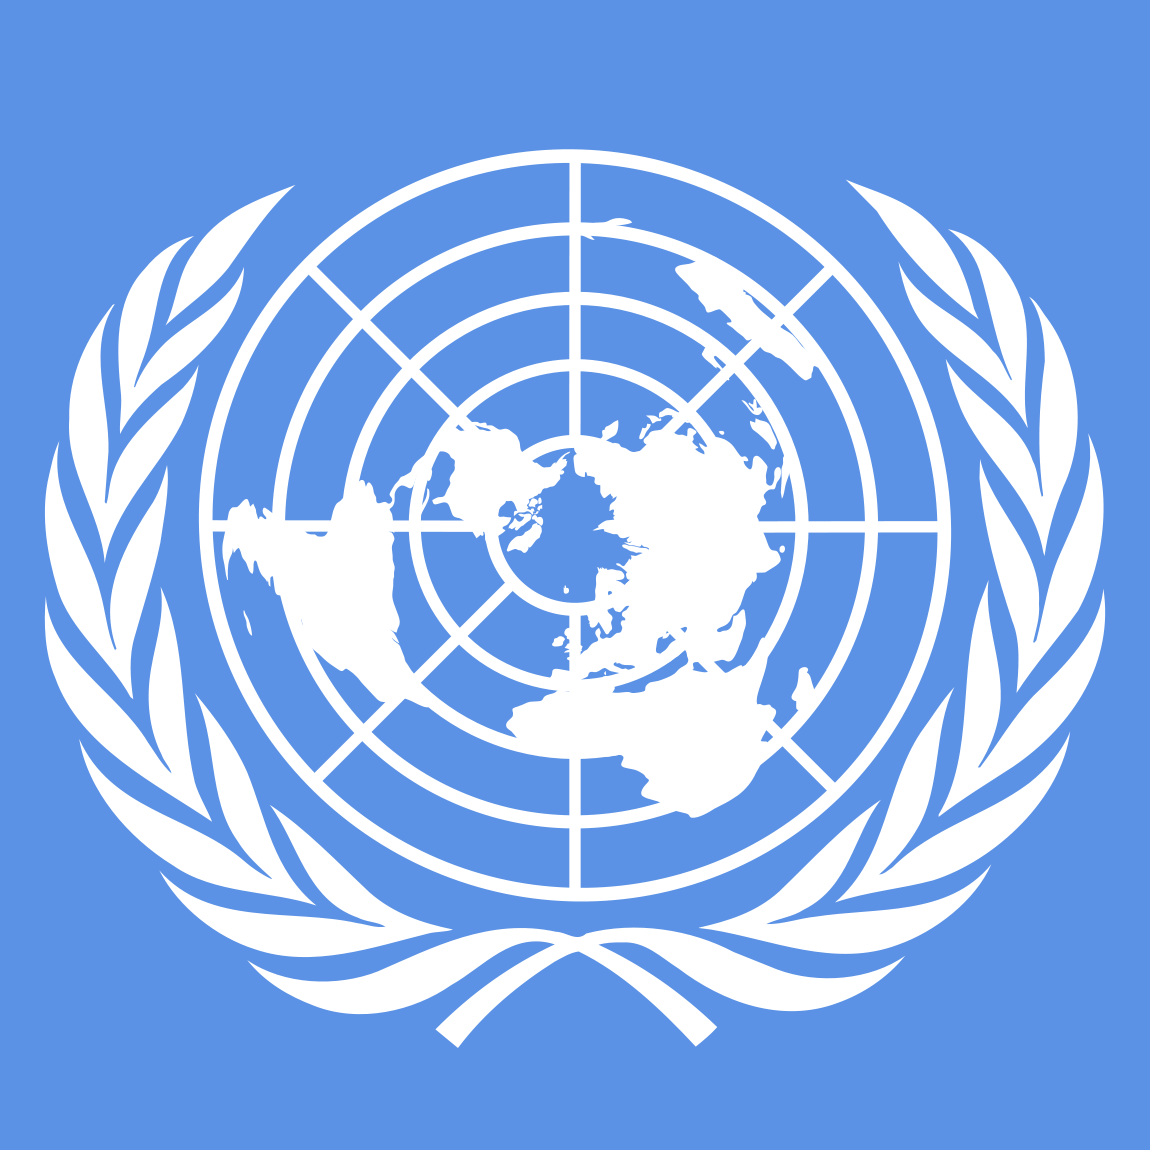 Who should get to use the internet Un Human Rights Logo